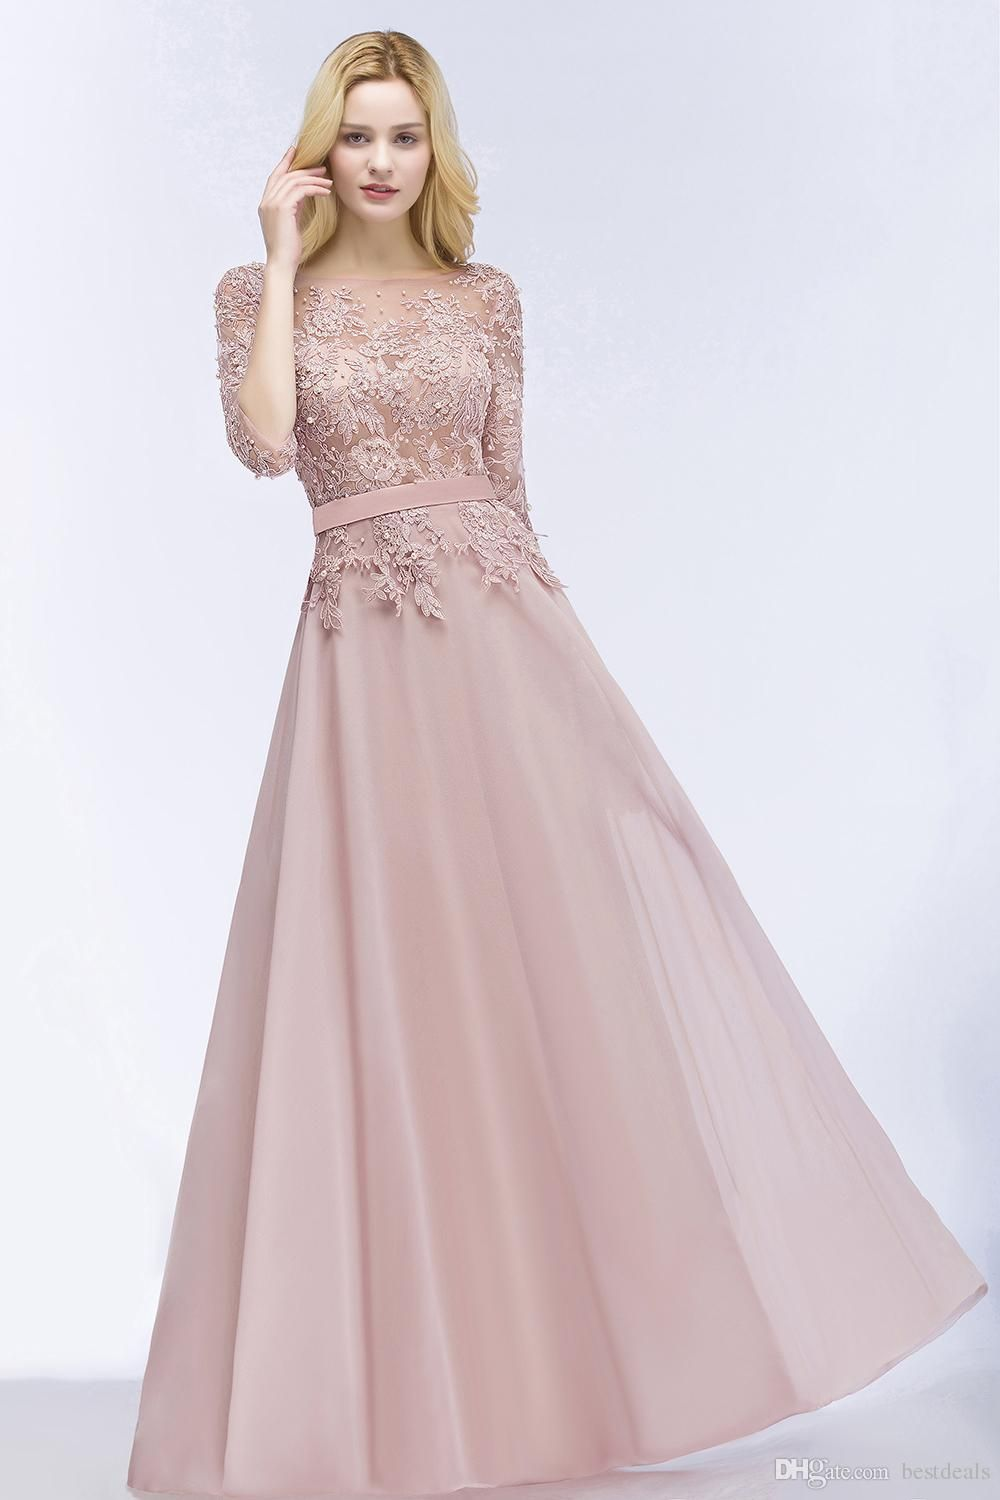 2018 New Designer Blush Pink Long Prom Dresses with Half Sleeves Beaded  Appliqued Cheap Wedding Party Gowns CPS915 01ec2f6ef32a